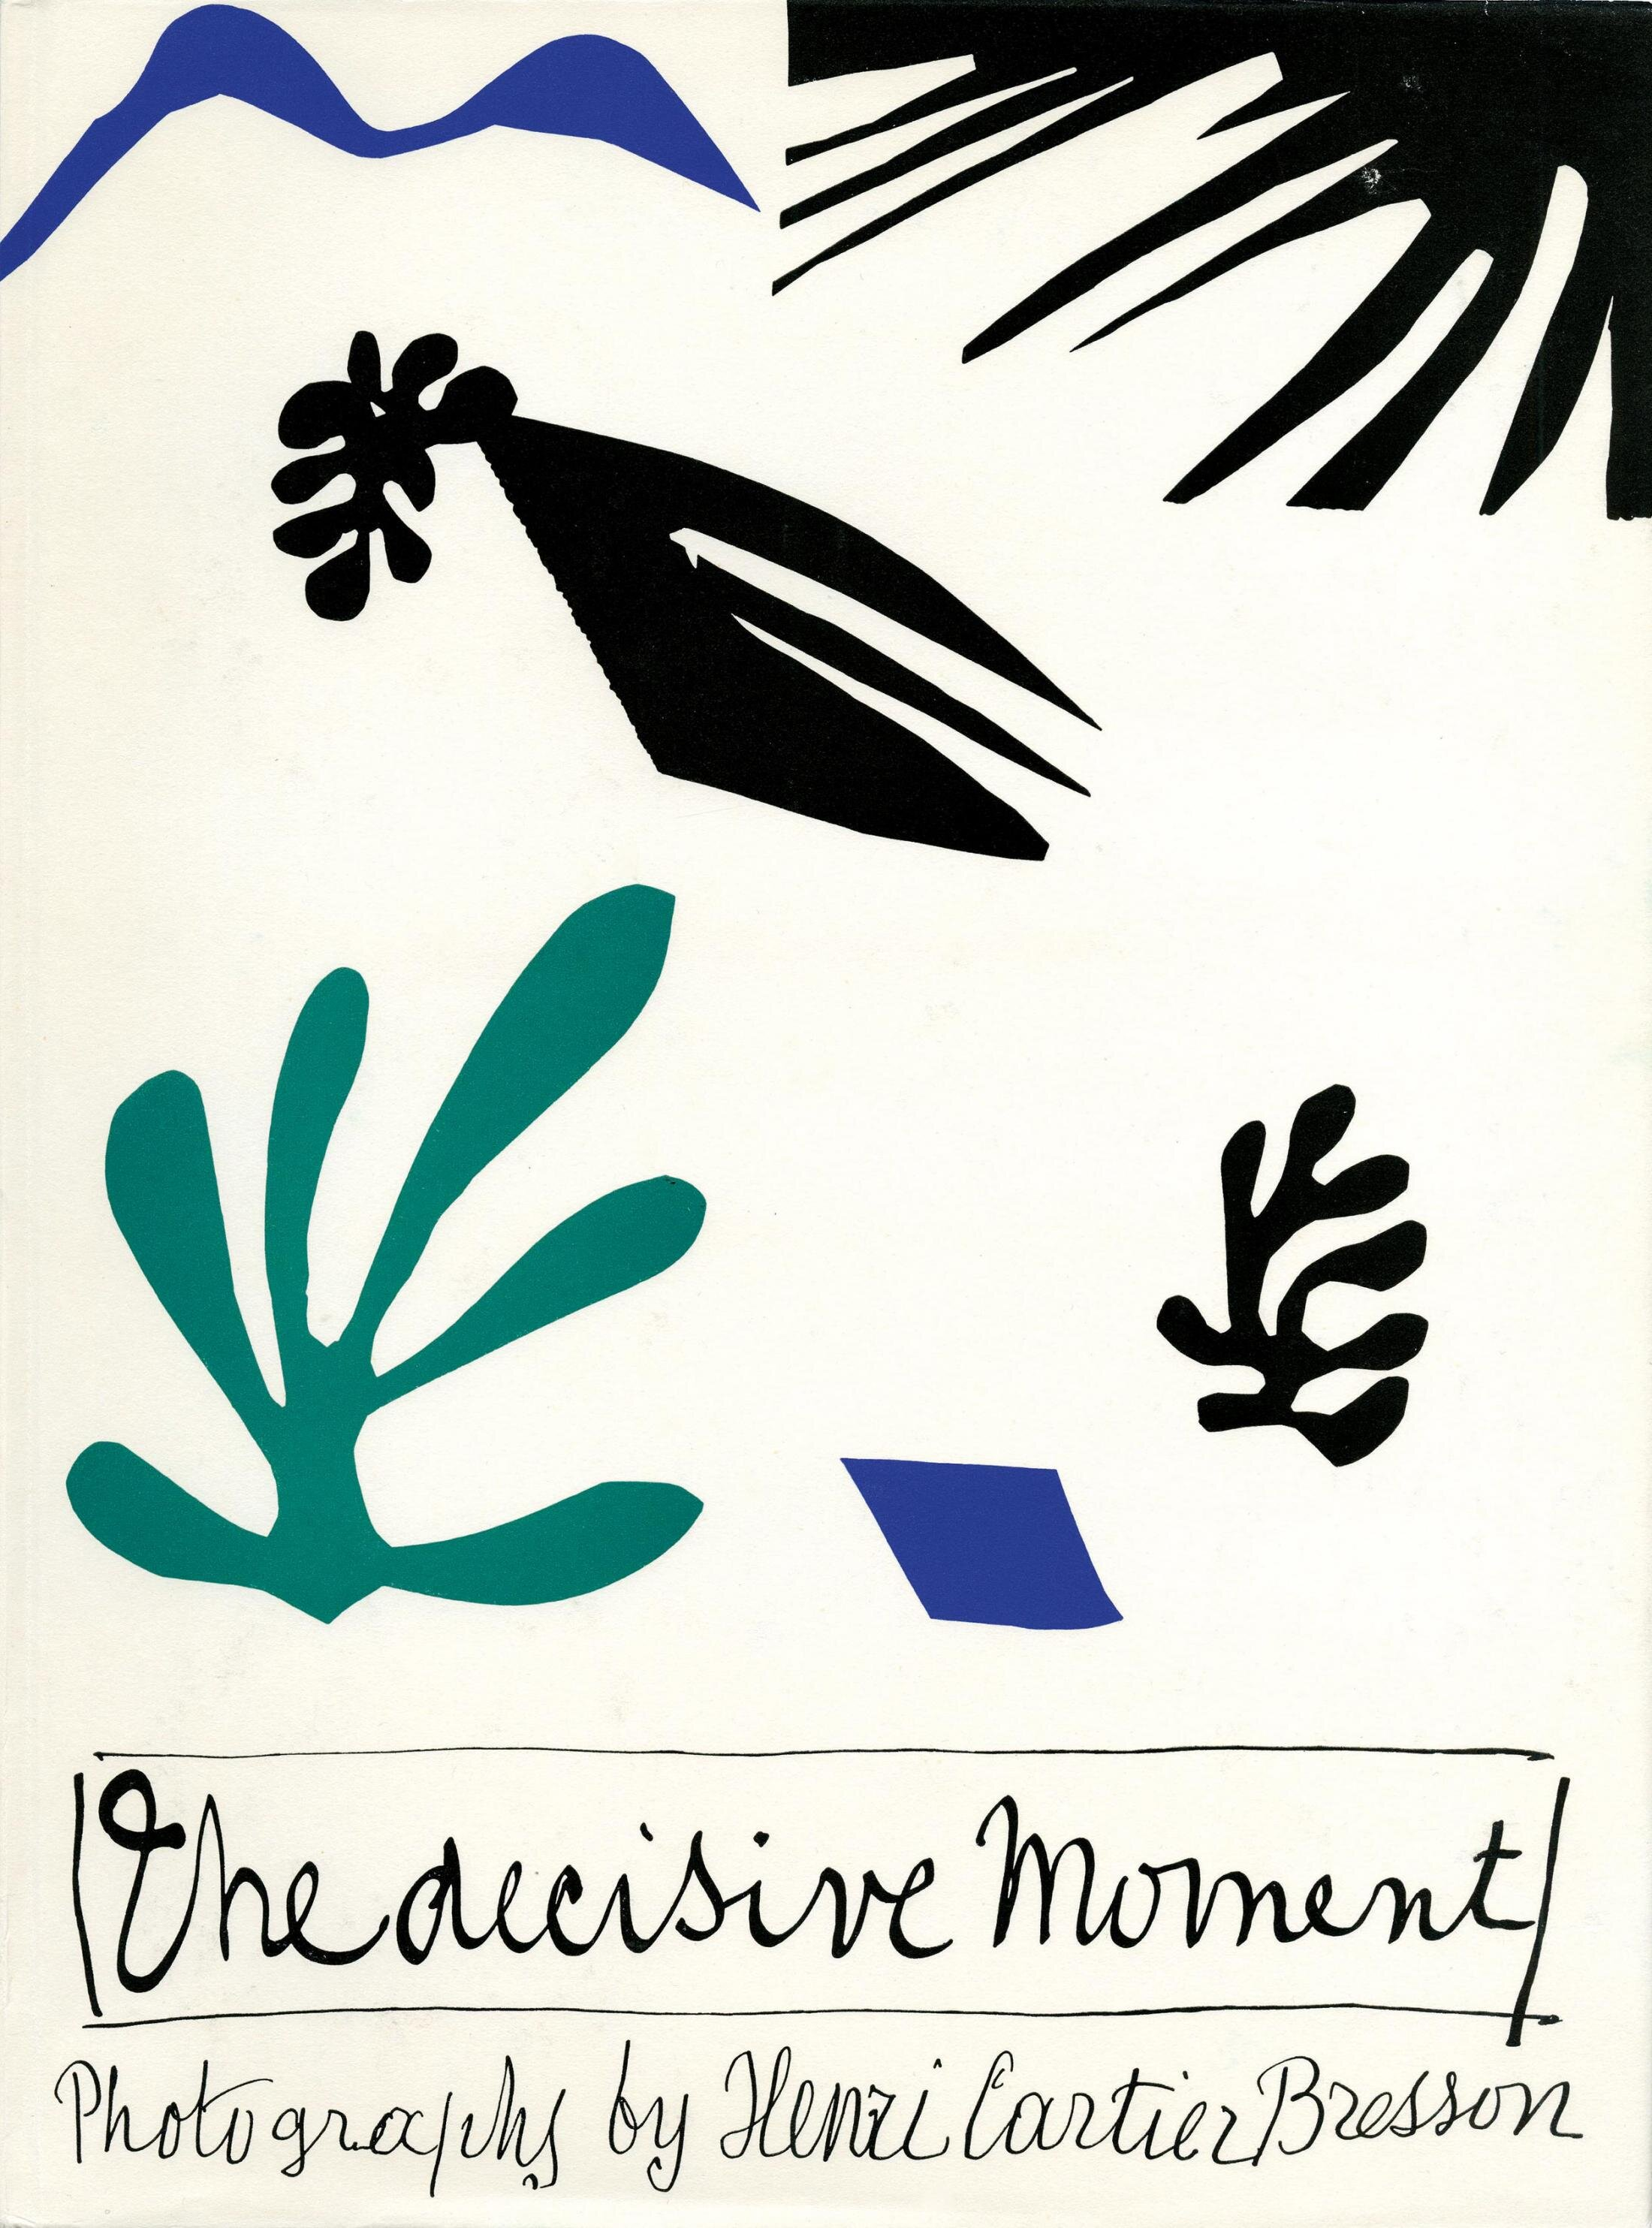 ONE DECISIVE MOMENT - Photographs by Henri Cartier Bresson | Steidl Books